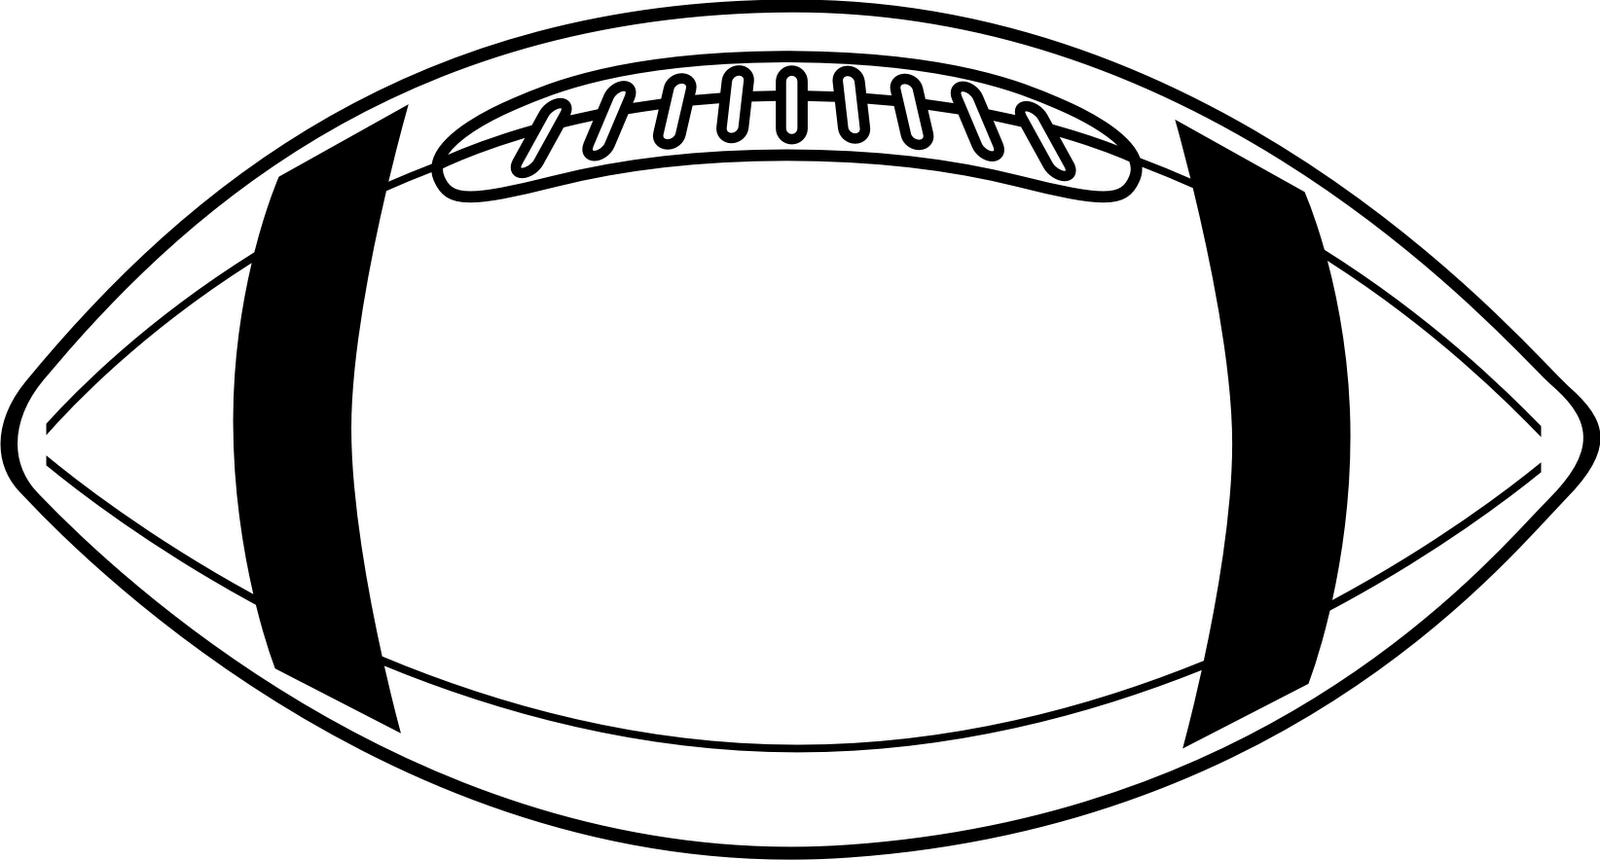 Football outline clipart